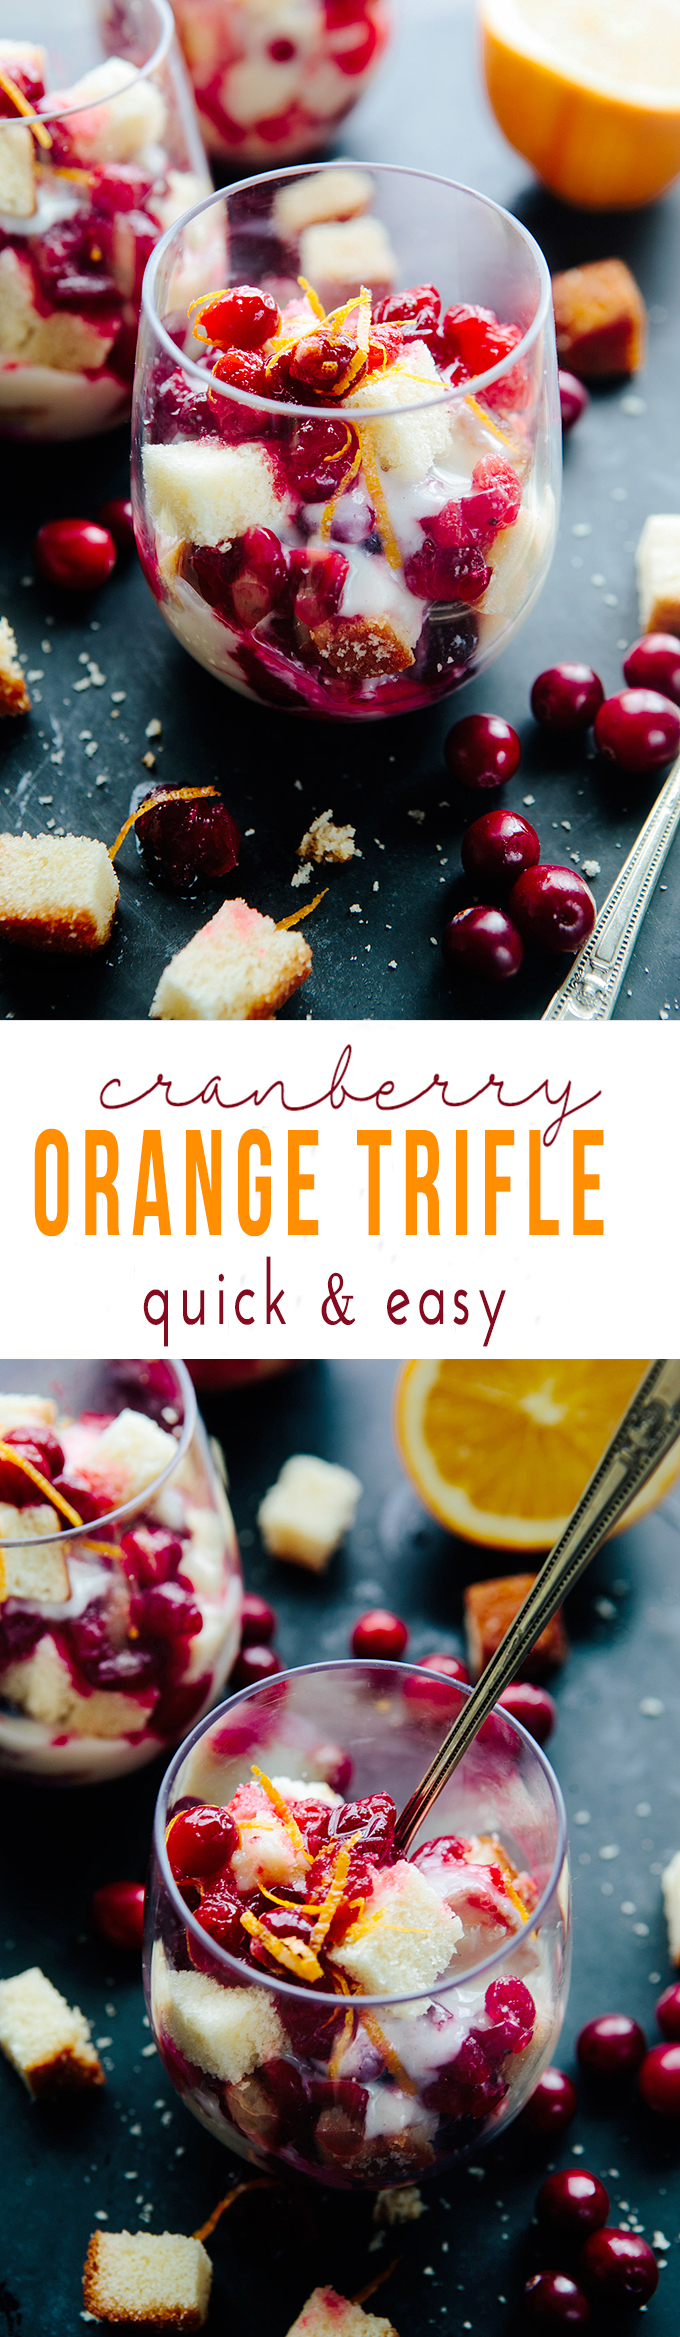 Cranberry Orange Trifle - A simple but stunning (not to mention delicious) holiday dessert.